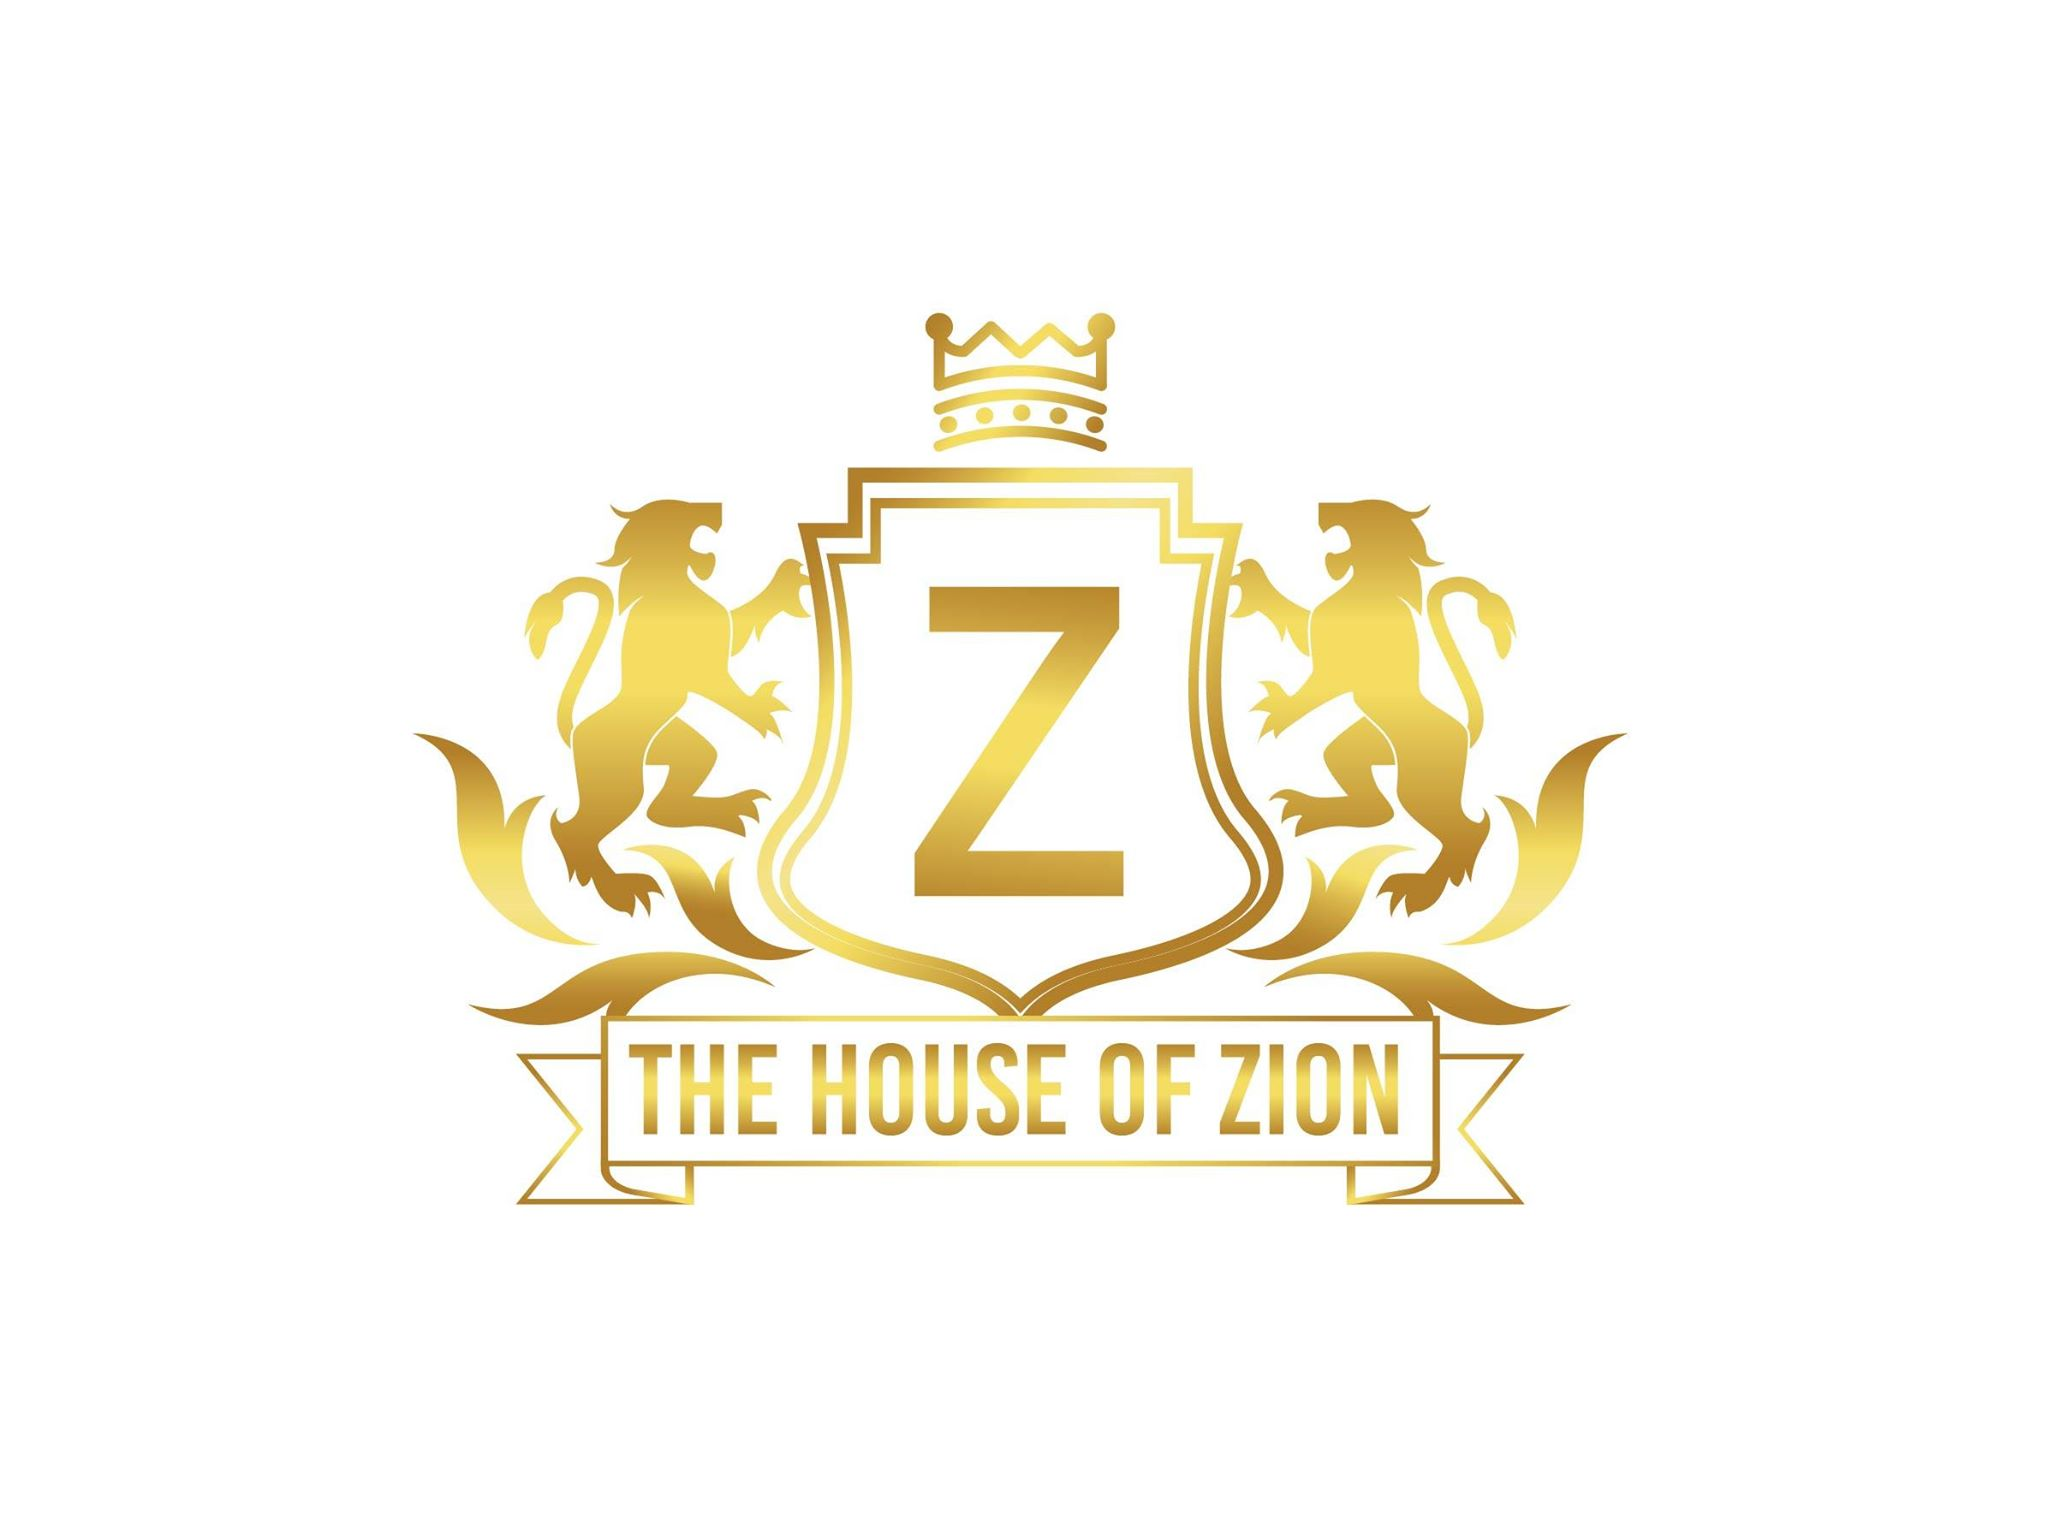 the house of zion